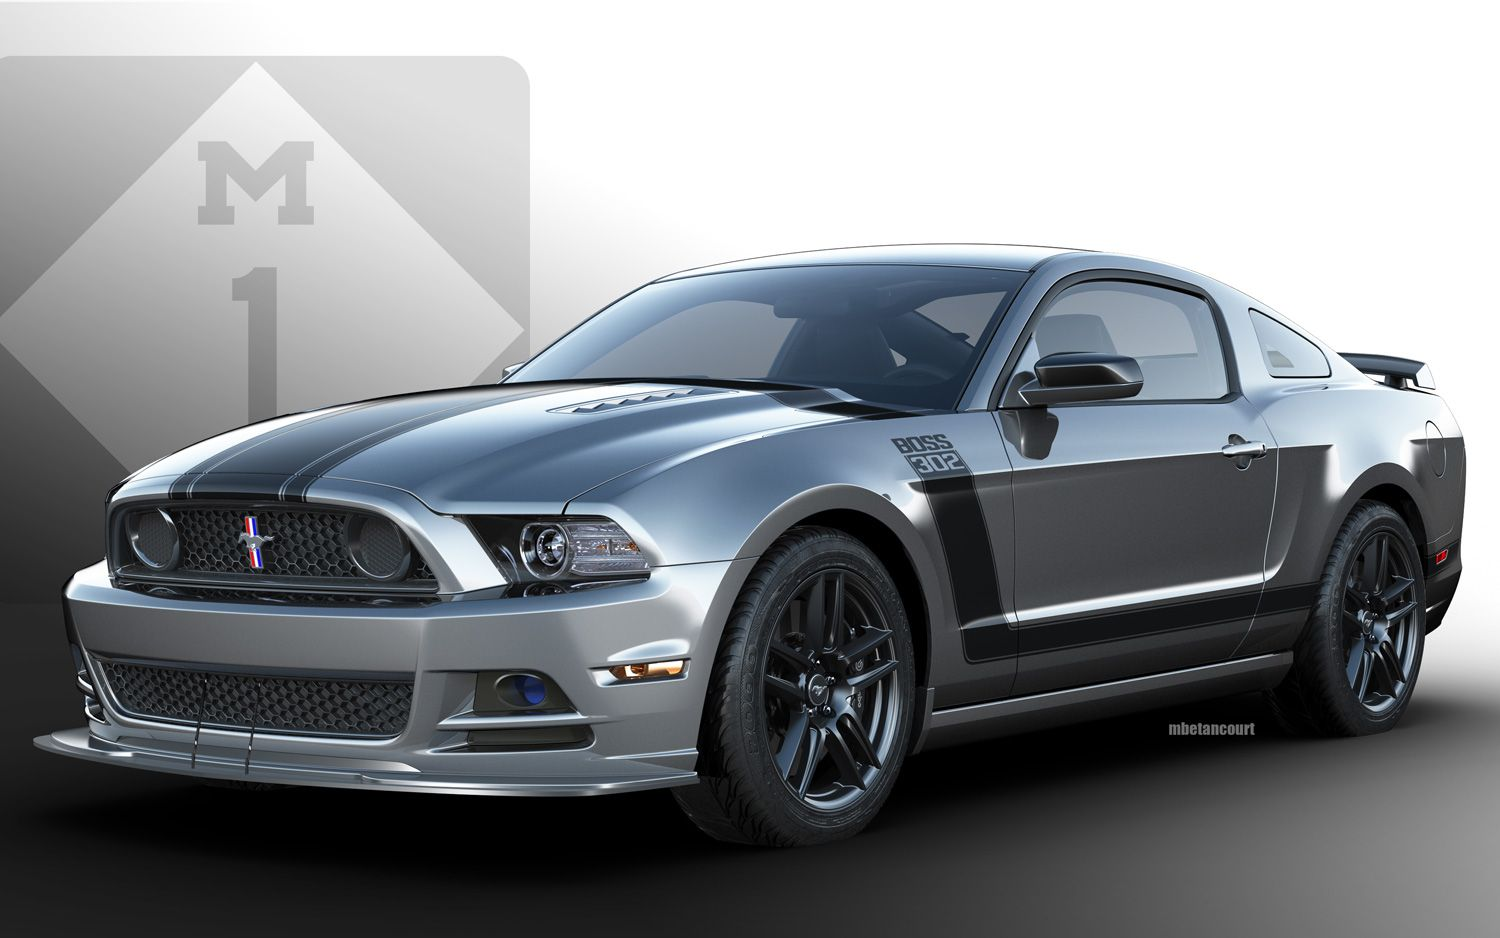 Raffle Tickets For Customized 2013 Ford Mustang Boss 302 Benefit ...